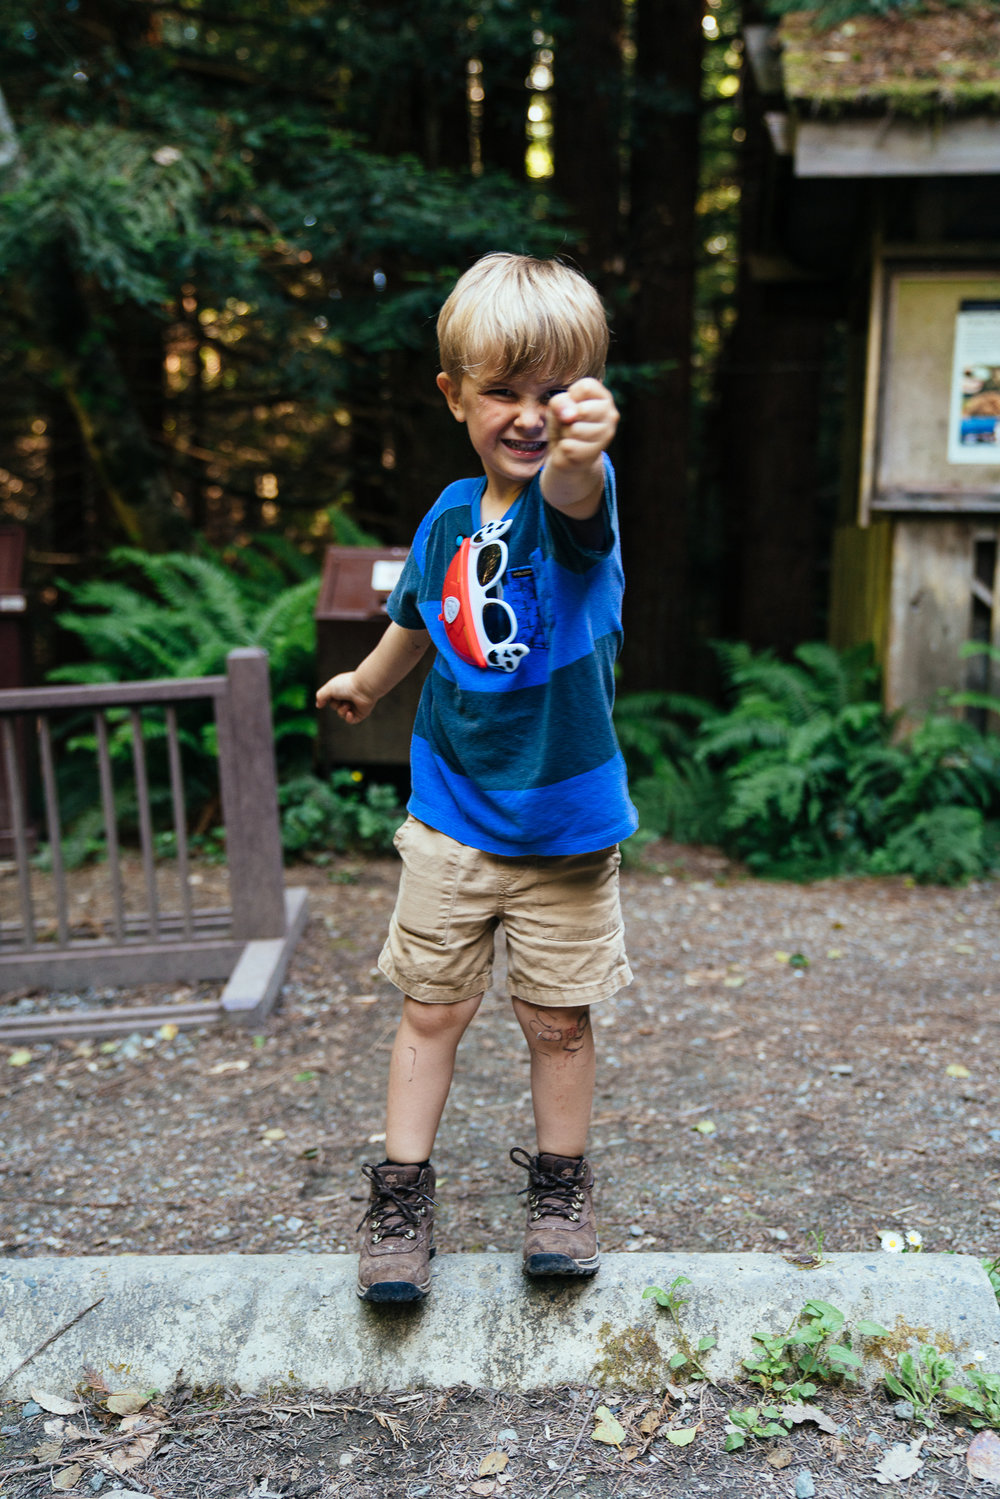 Scabbed knees and bandaid residue are the markers of a good childhood summer, right?